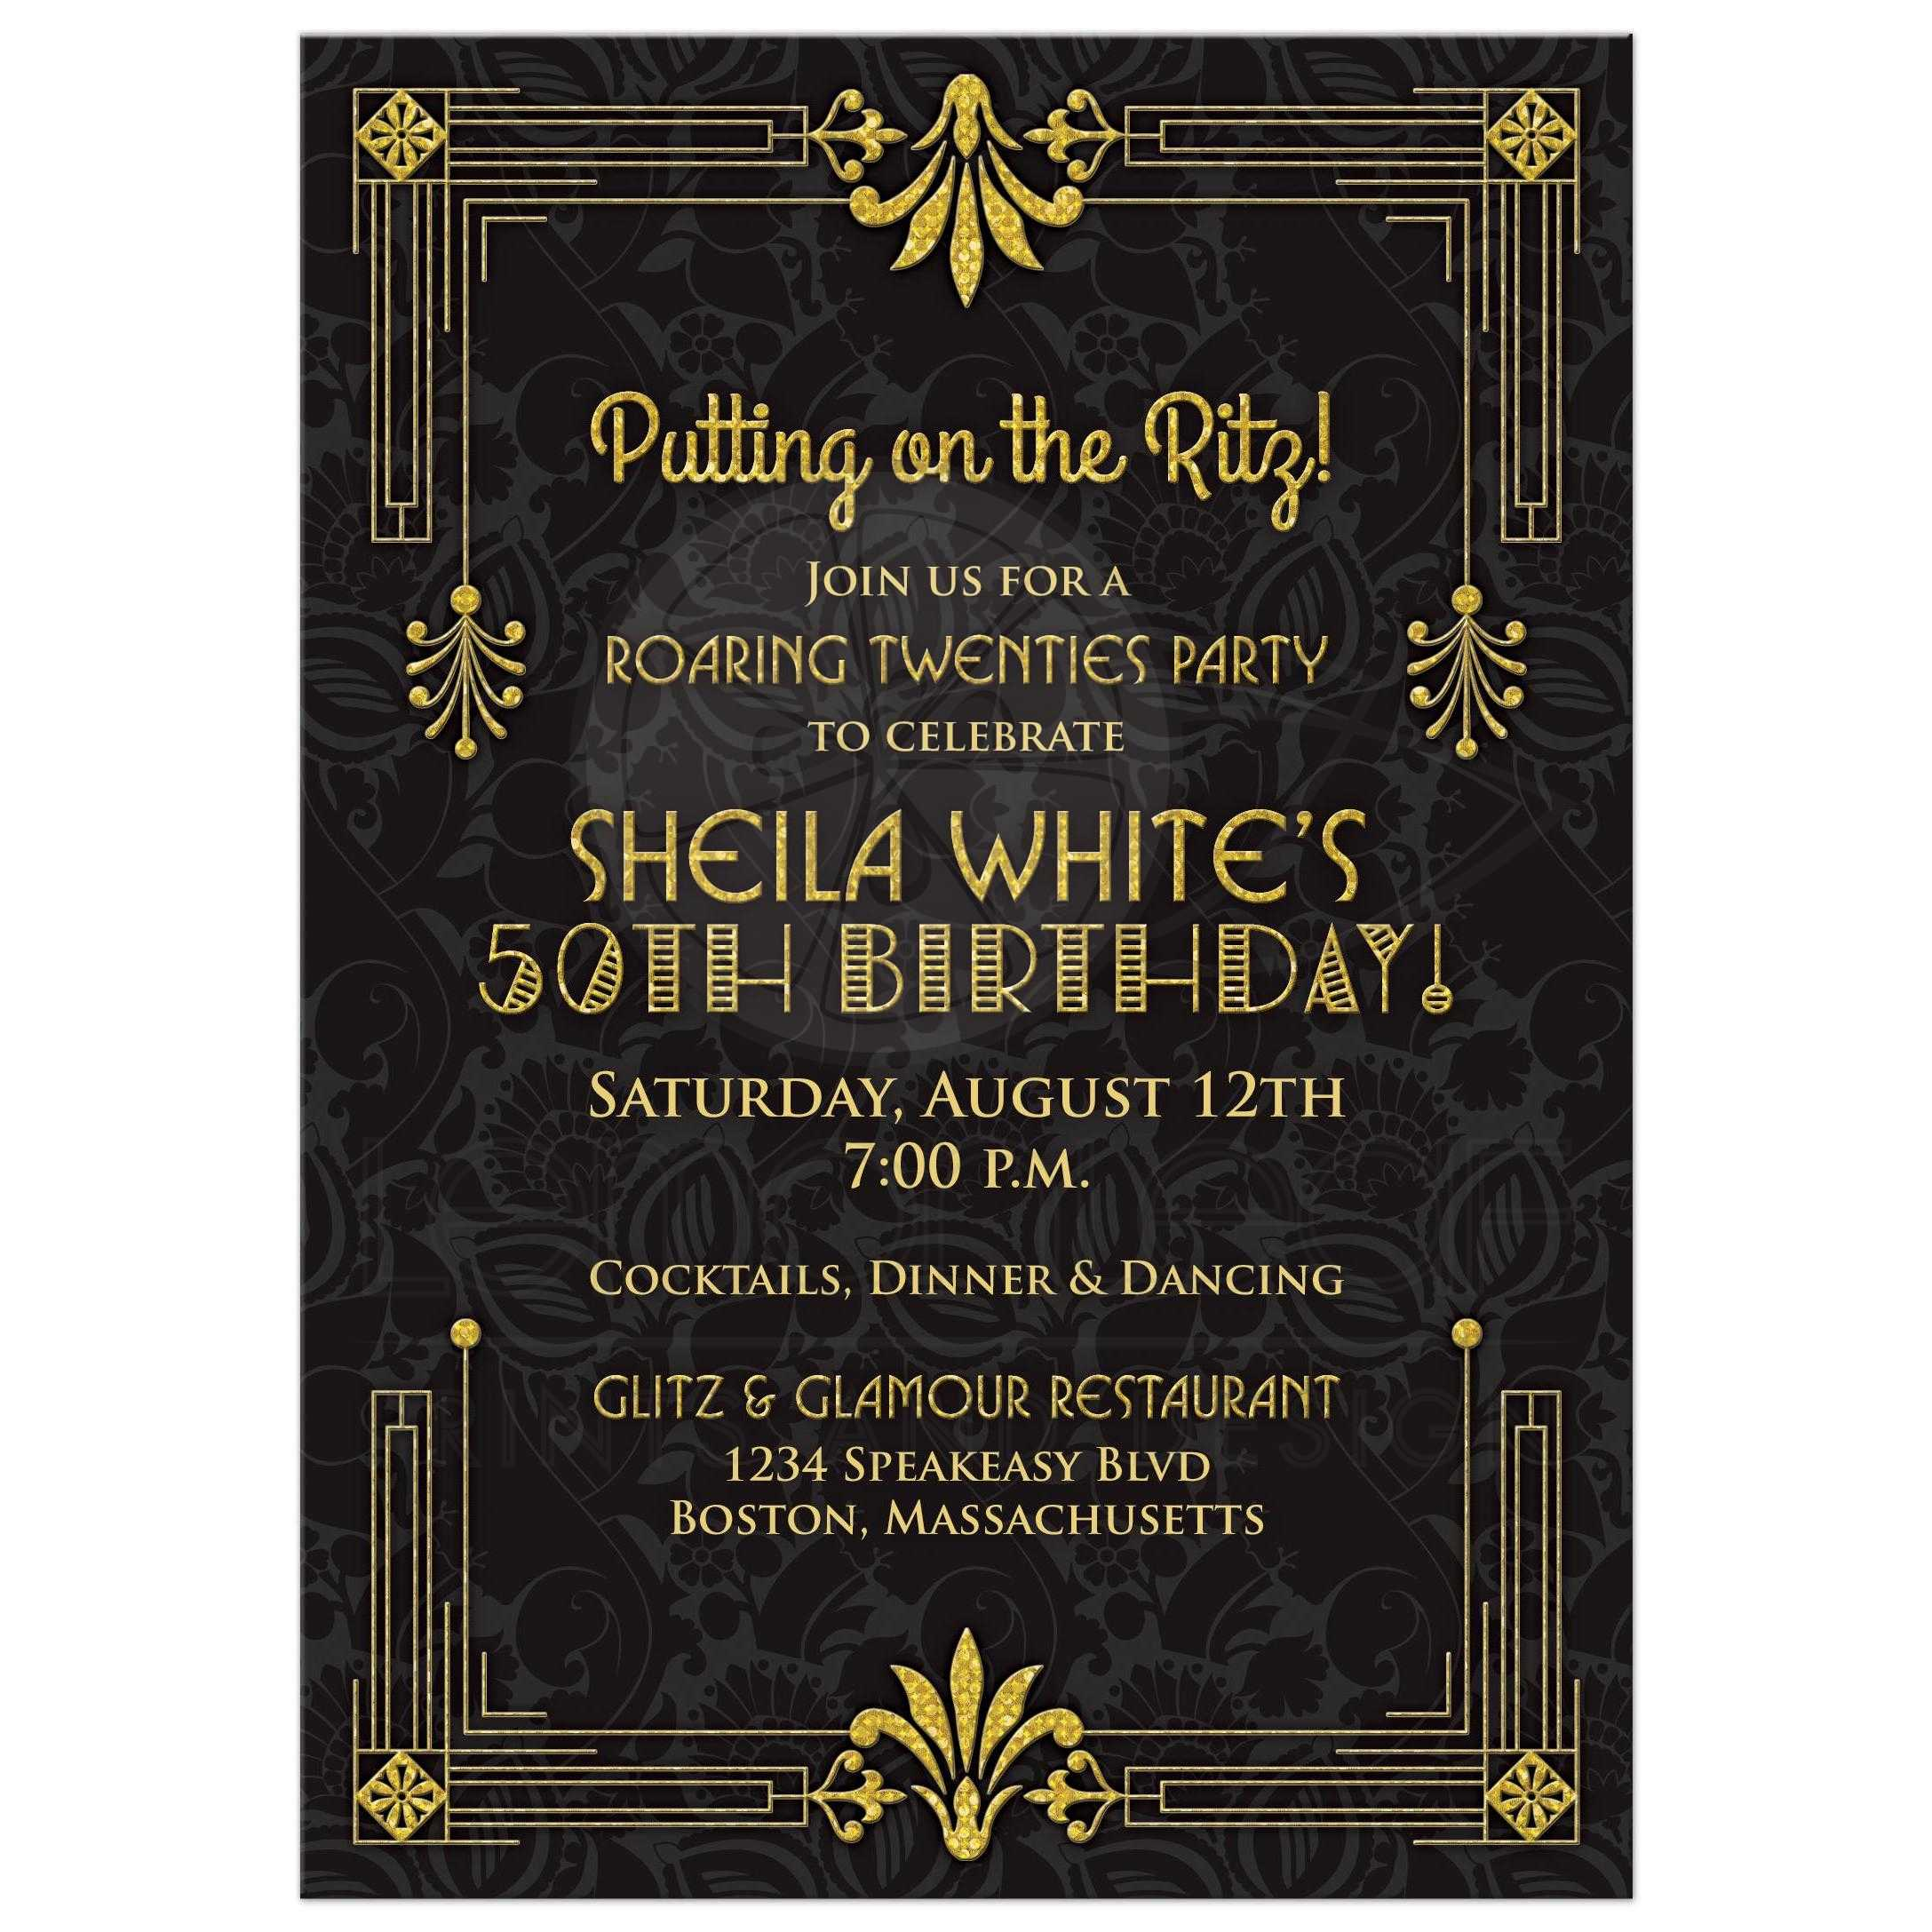 Black and gold birthday invitations goalblockety black and gold birthday invitations stopboris Gallery